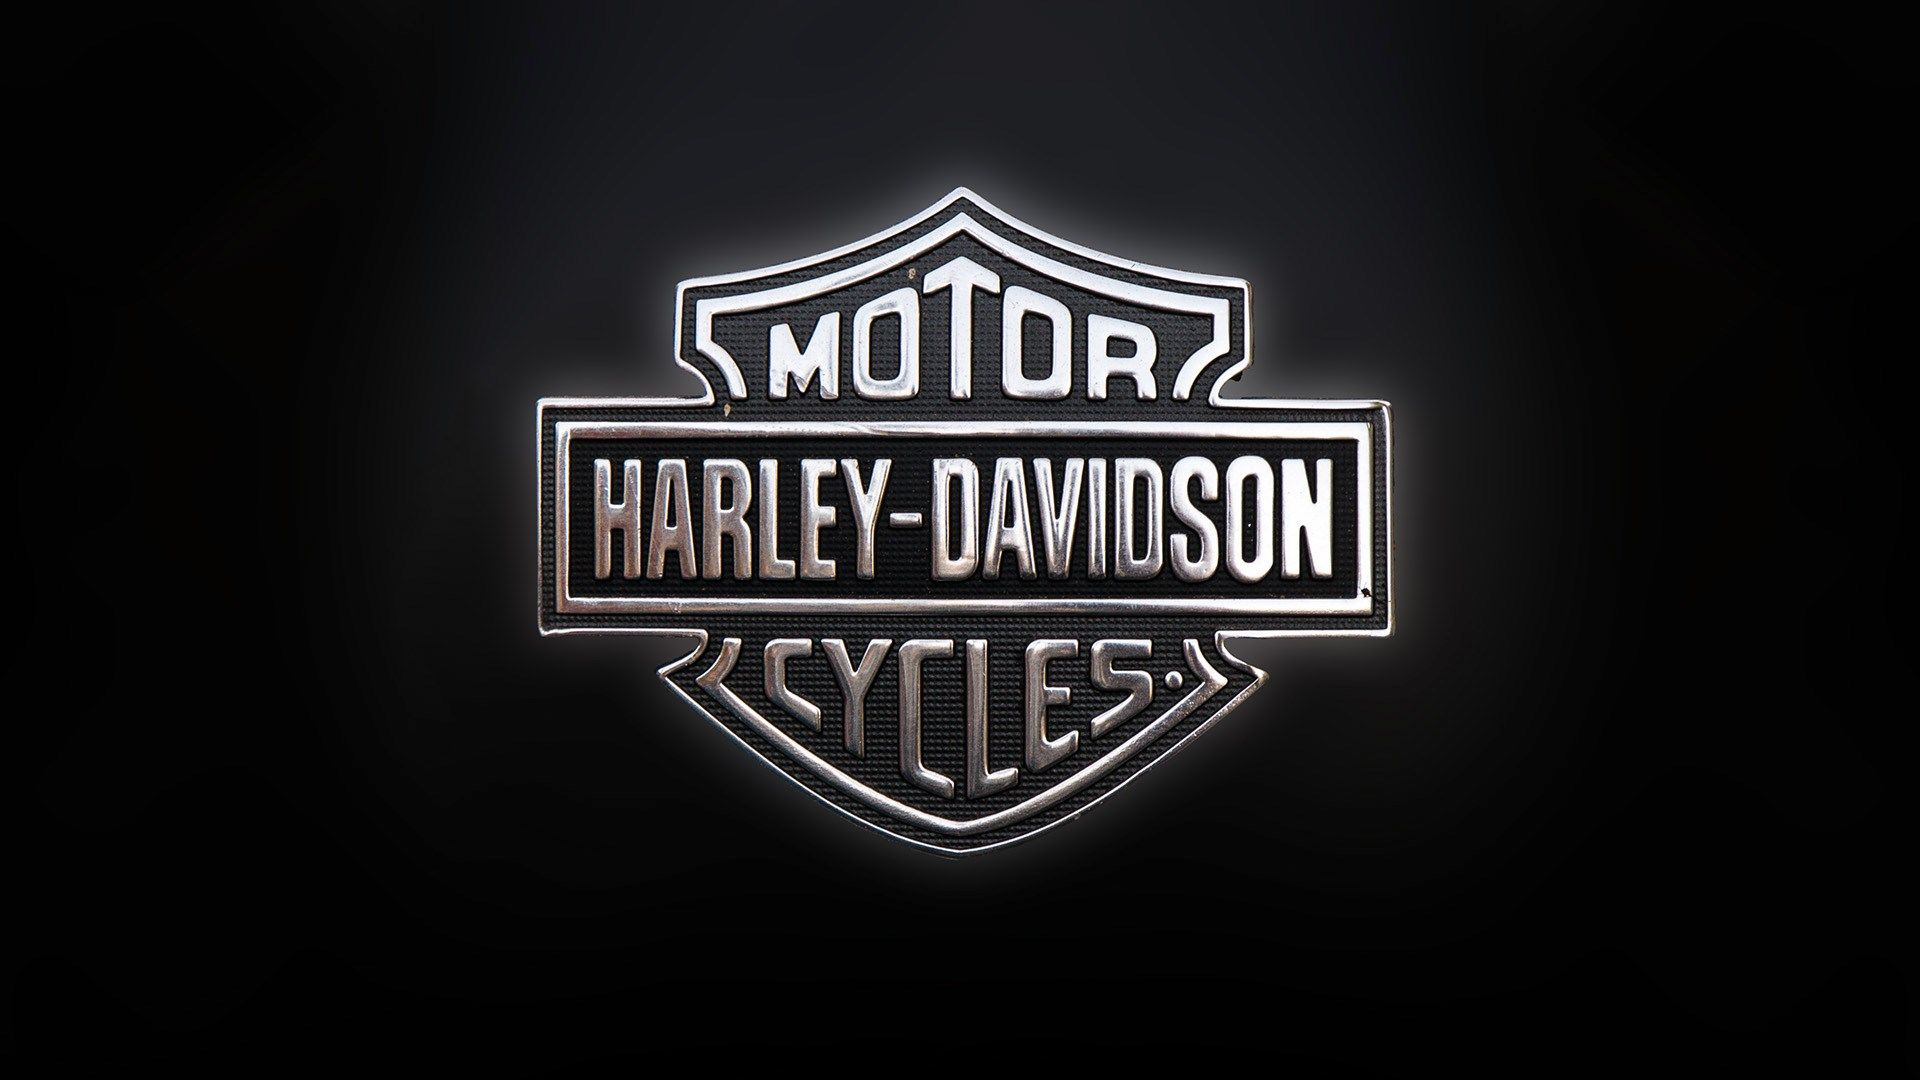 1920x1080 Harley Davidson Free Background Wallpaper Jpg 188 Kb